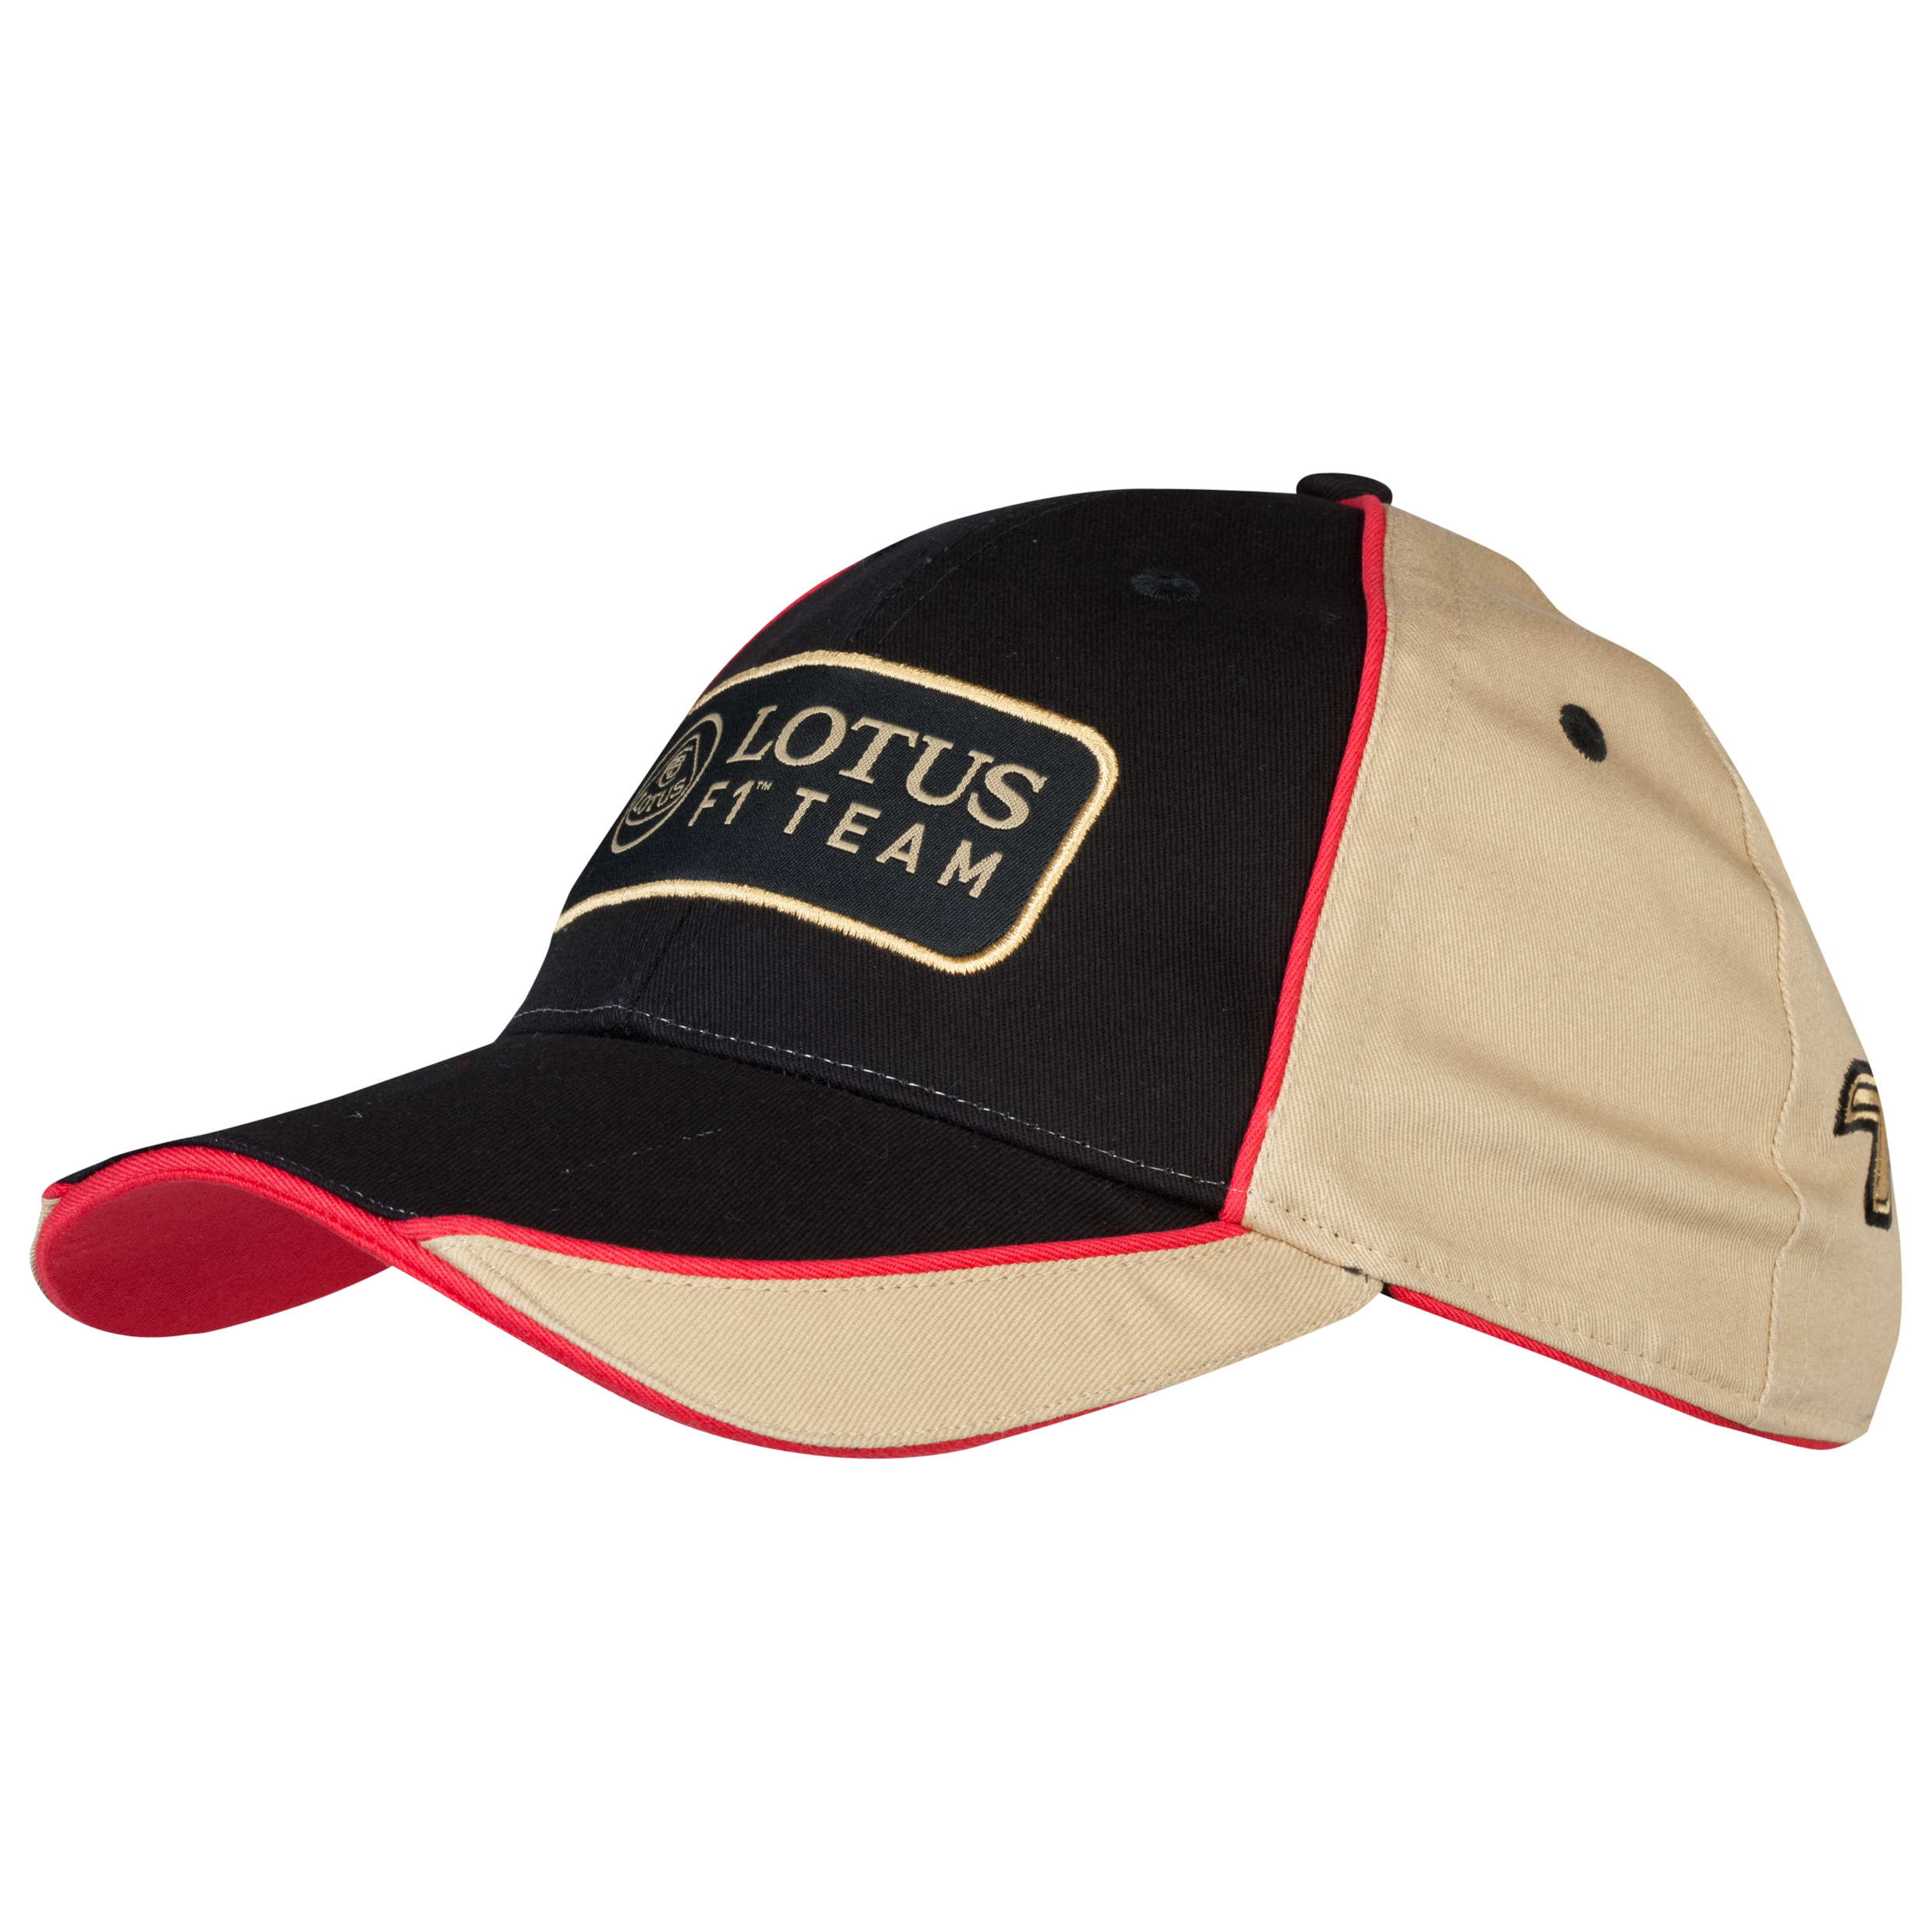 Lotus F1 Team 2013 F1 Replica Adult Team Cap